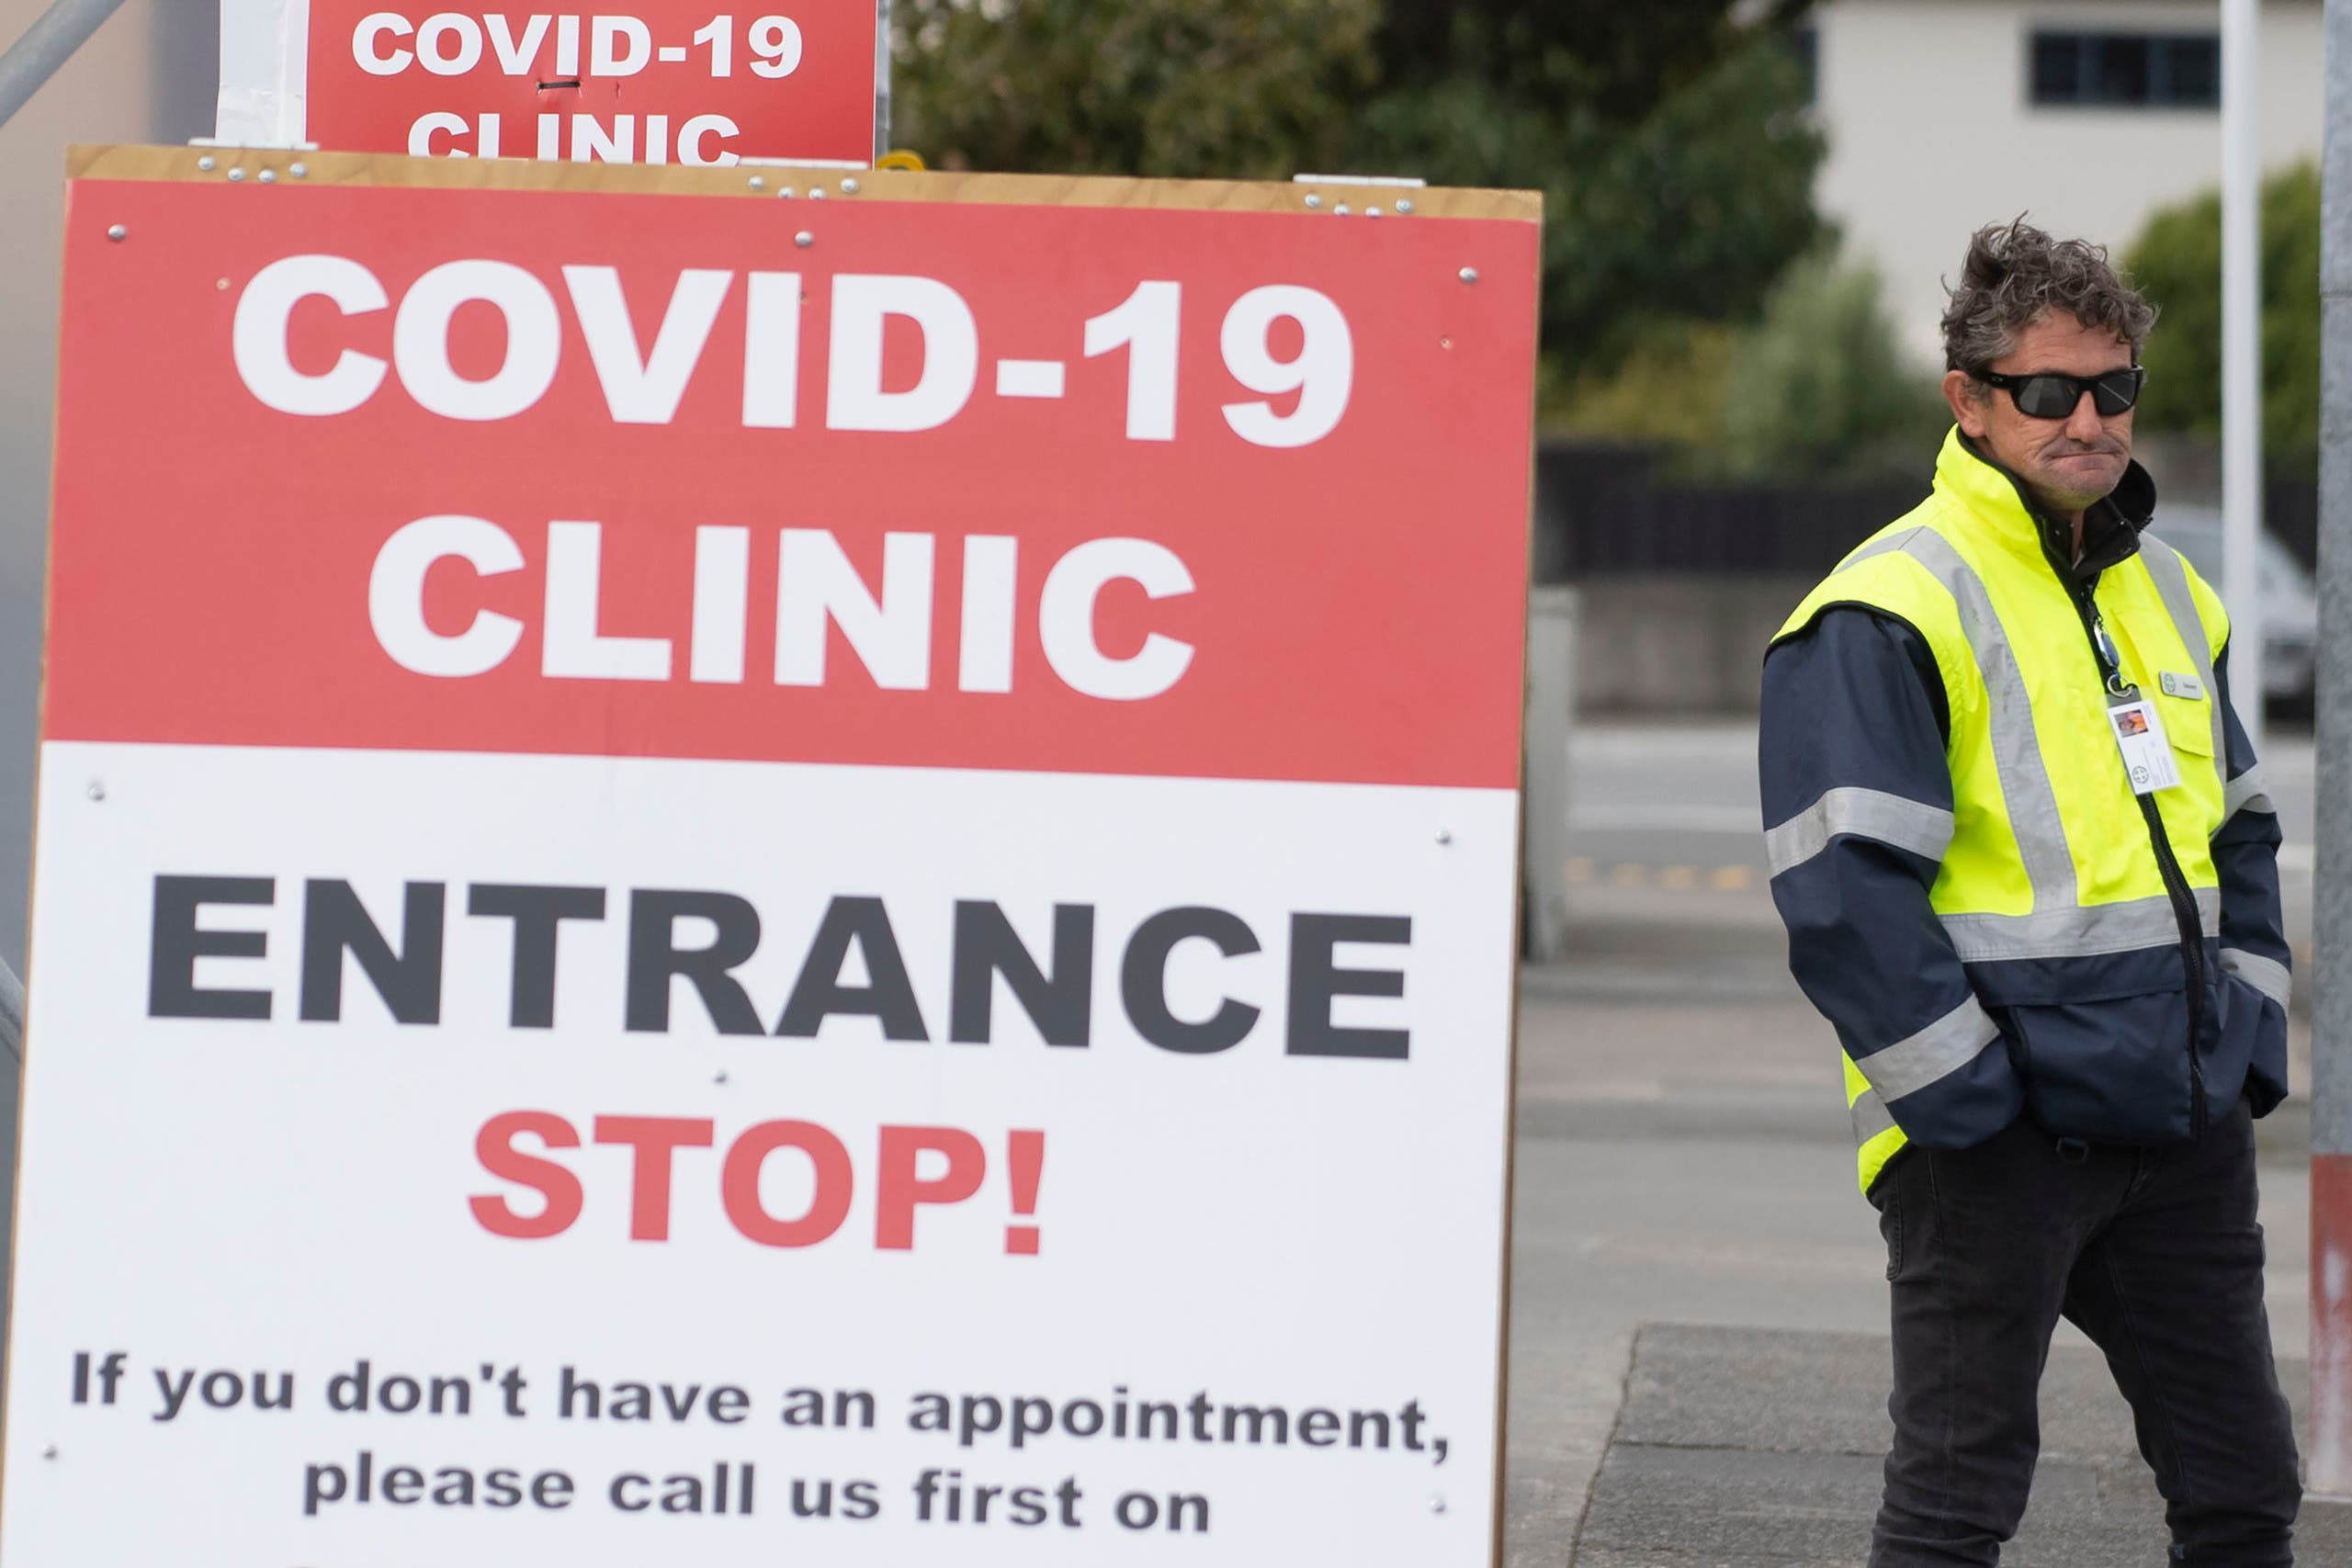 This file photo taken on April 20, 2020 shows a security guard standing outside a COVID-19 coronavirus clinic in Lower Hutt, near Wellington.